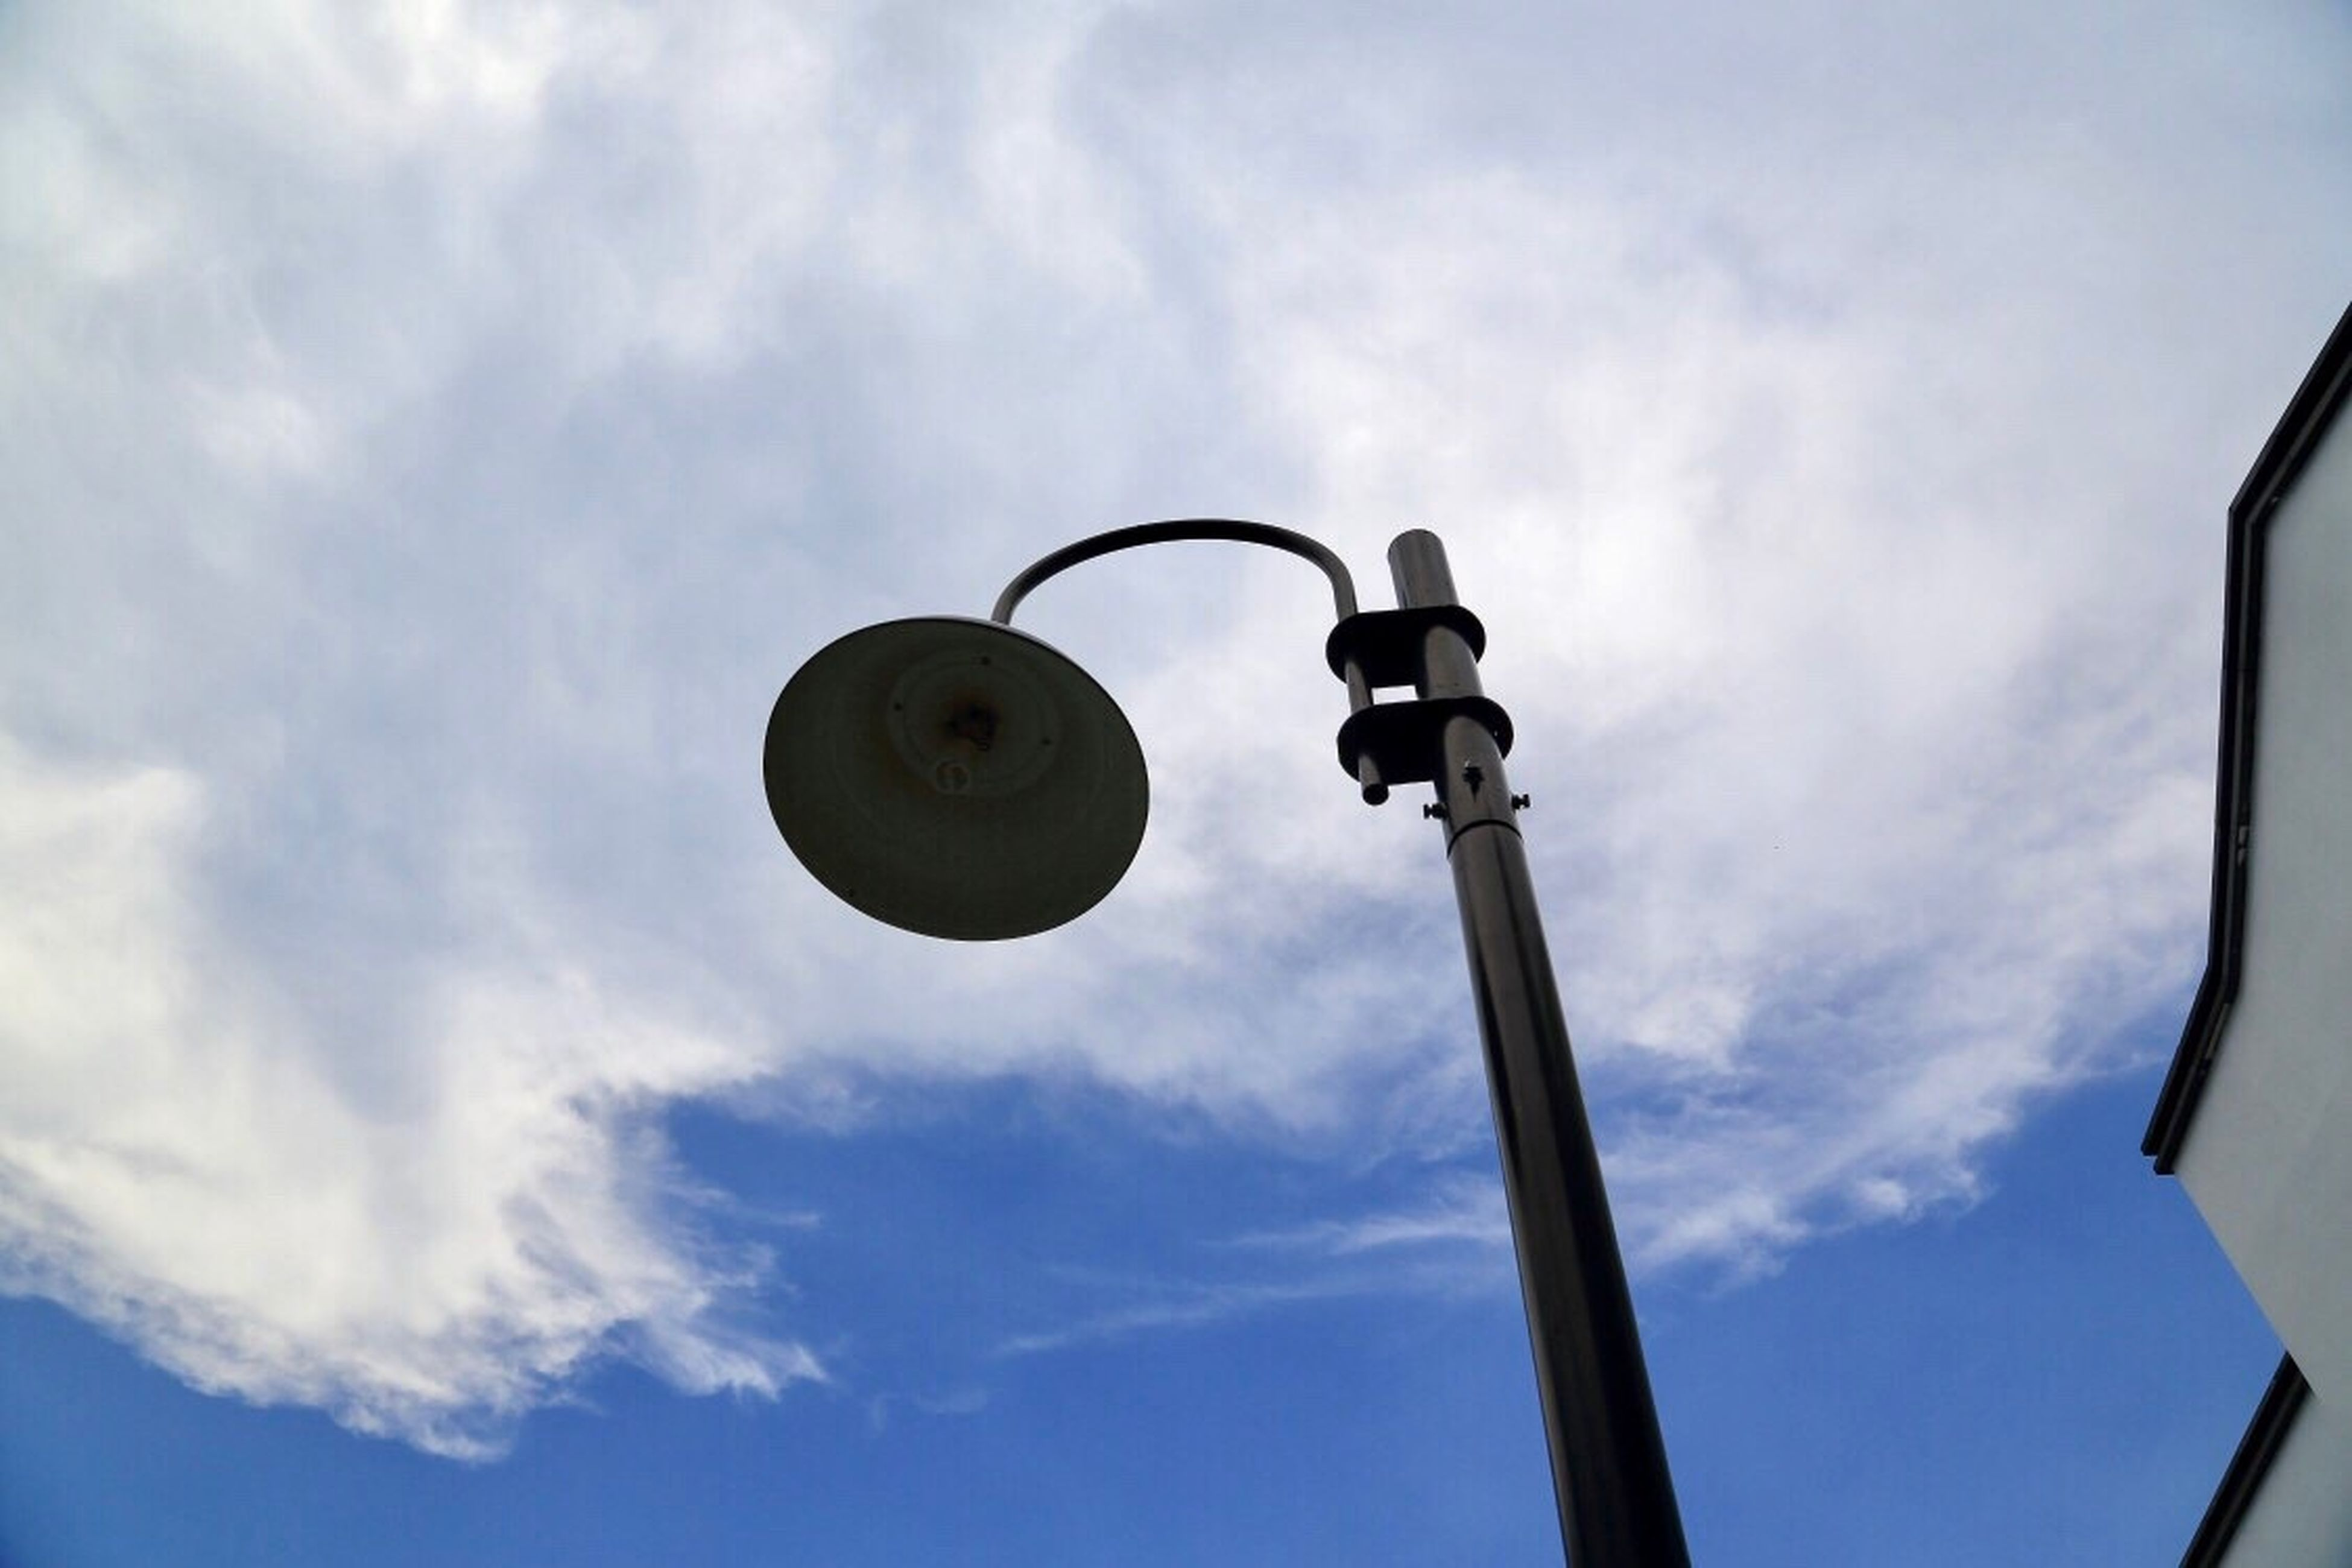 low angle view, sky, cloud - sky, street light, lighting equipment, communication, outdoors, no people, day, signal, road sign, architecture